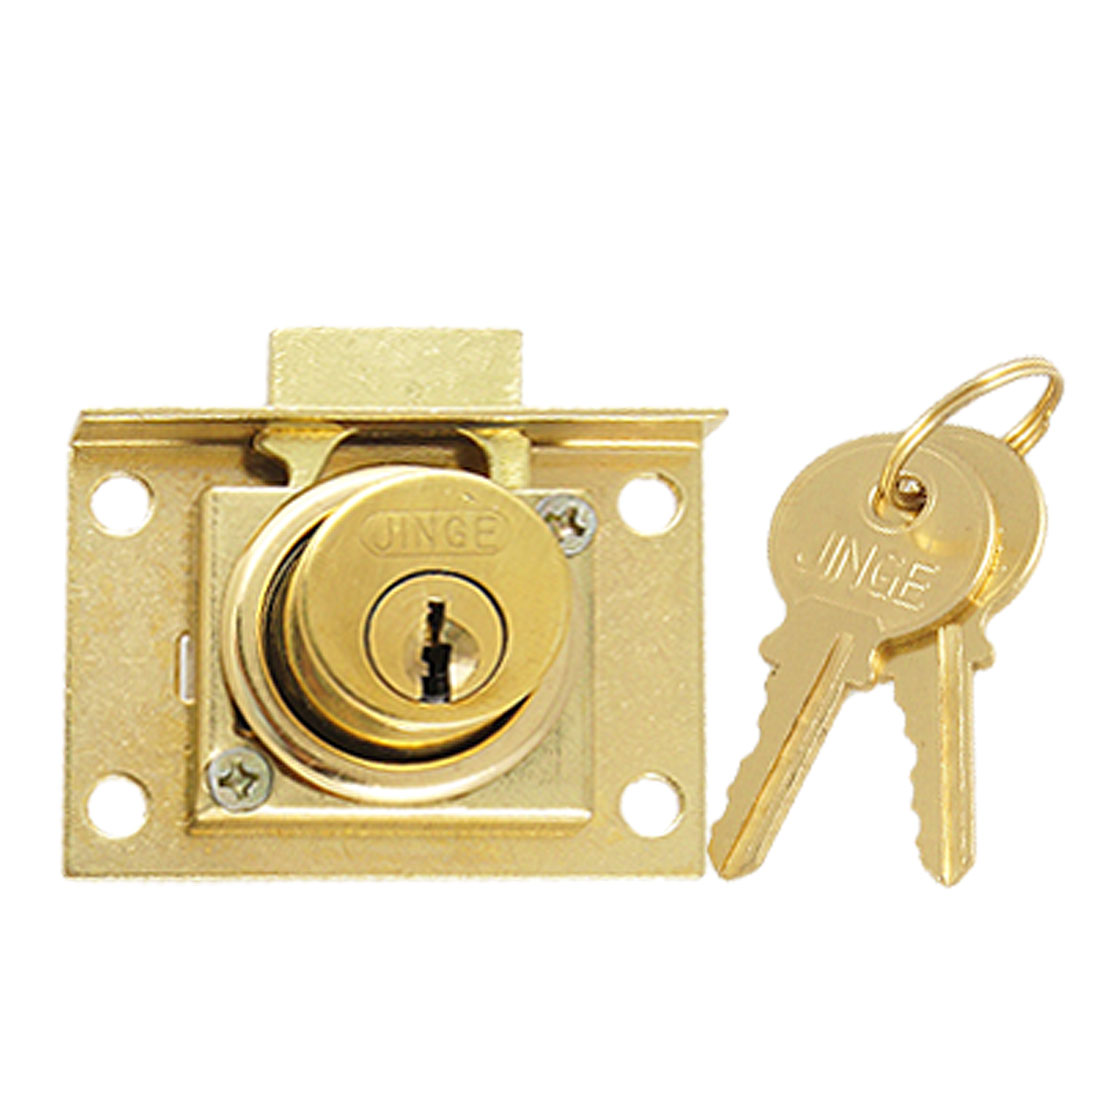 "Mailbox Drawer Safety 4/5"" Cylinder Diameter Locker Key Lock Gold Tone"